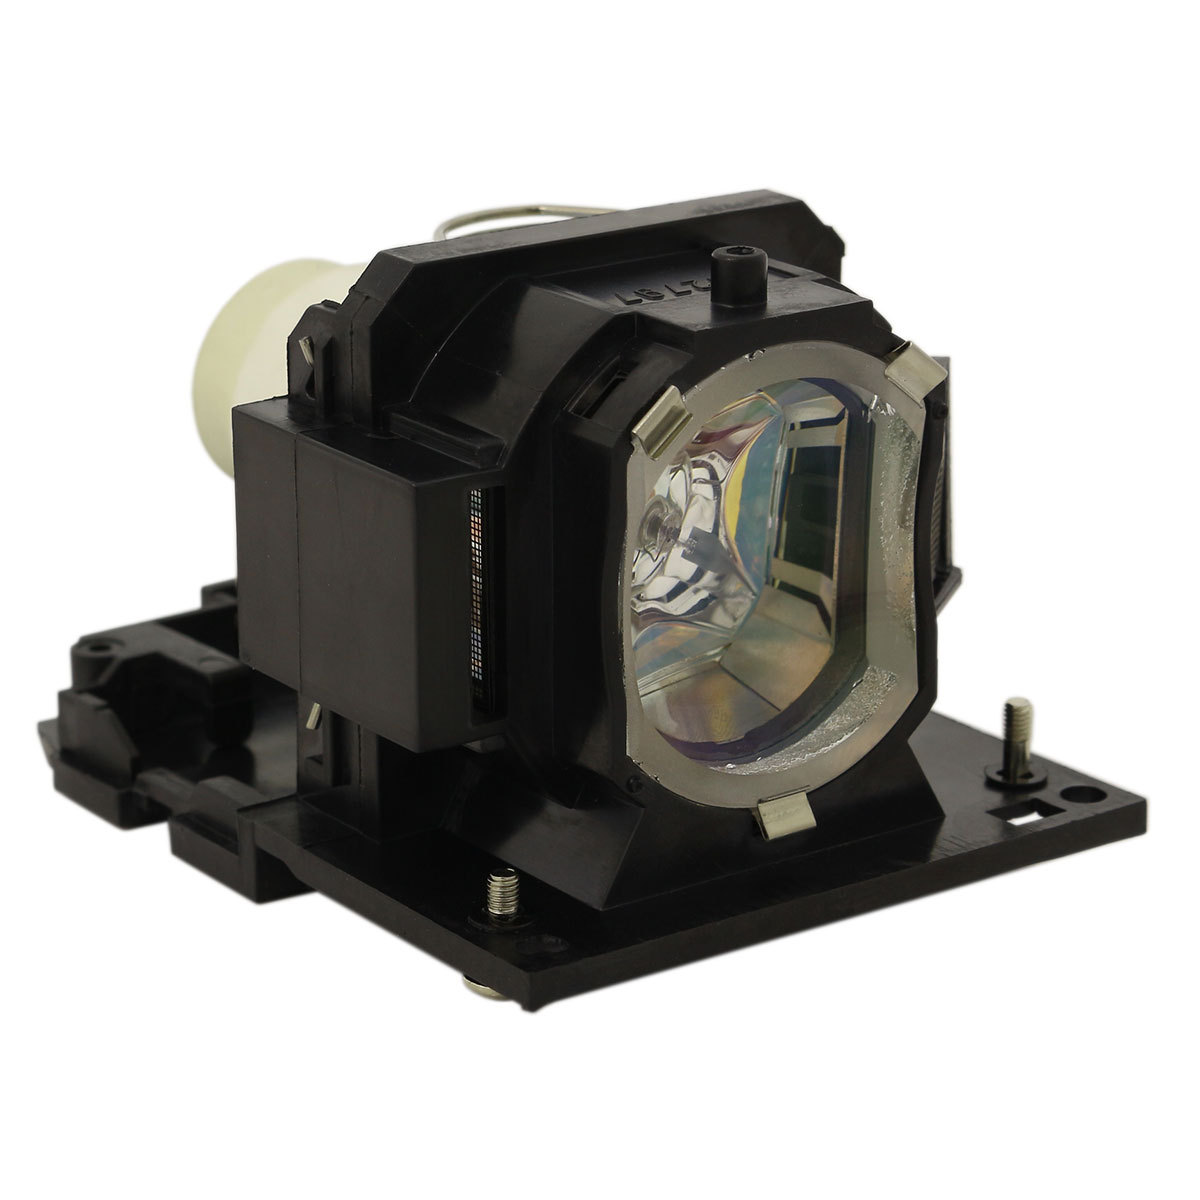 Primary image for Hitachi DT01433 Compatible Projector Lamp Module